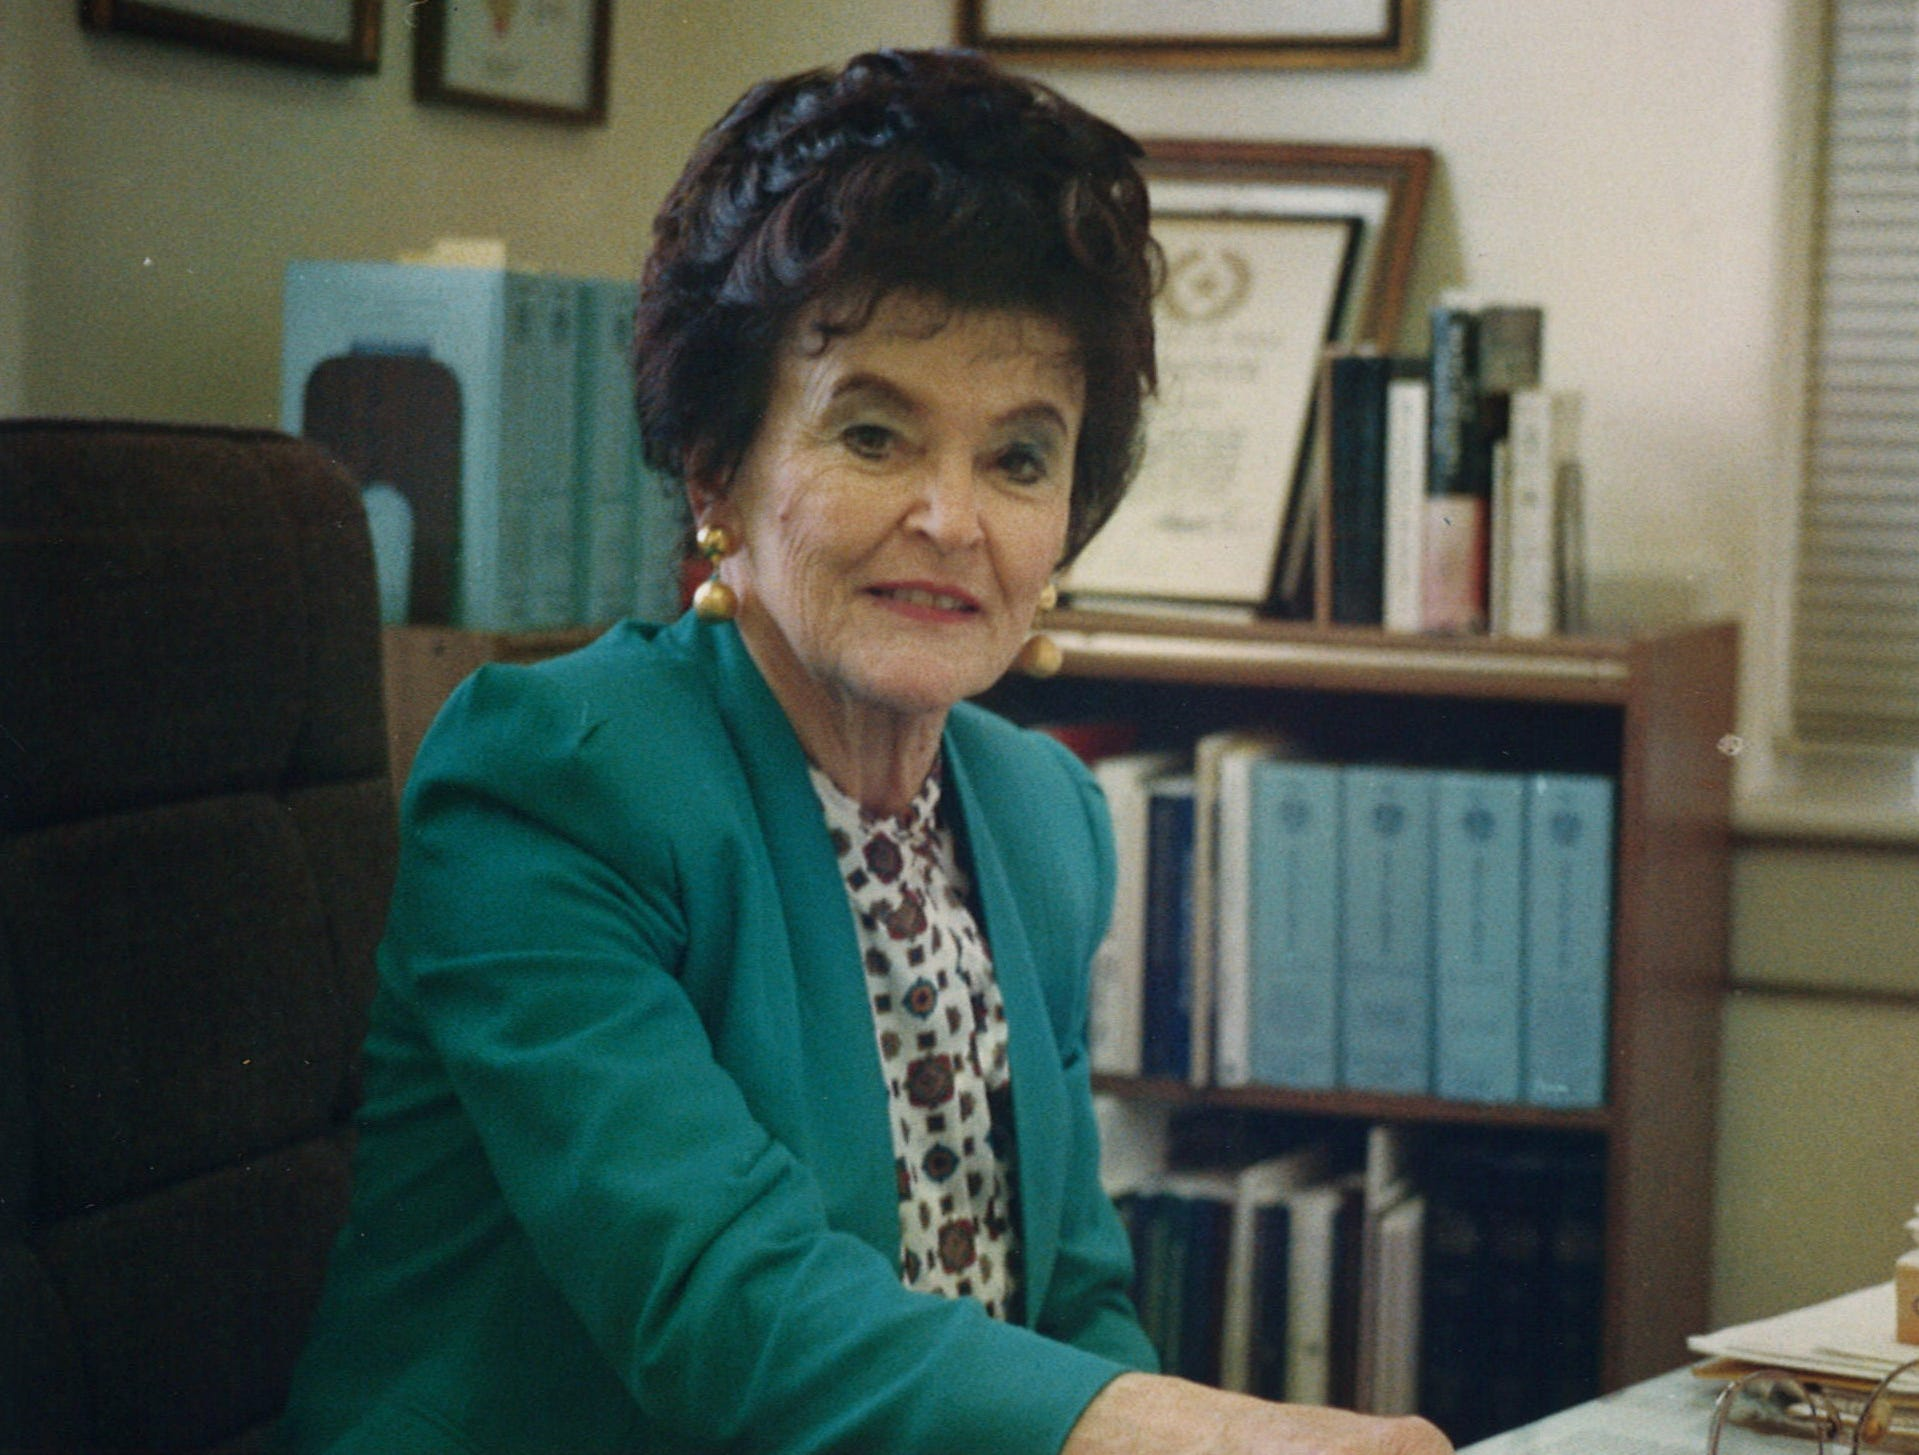 Rachel Littlejohn was elected to the 156th District Court, which serves Aransas, Bee, Live Oak, McMullen and San Patricio, in November 1974. This photo was taken in November 1993. She retired from the bench in 1994.